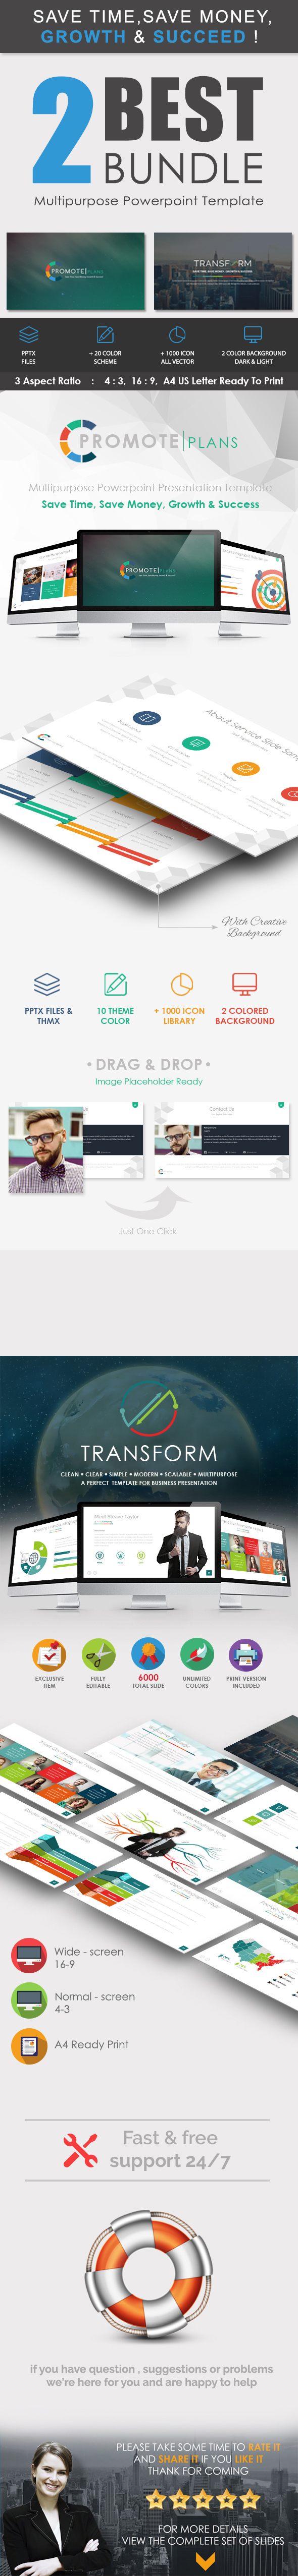 2 IN 1 - Powerpoint Presentation Template - Business PowerPoint Templates